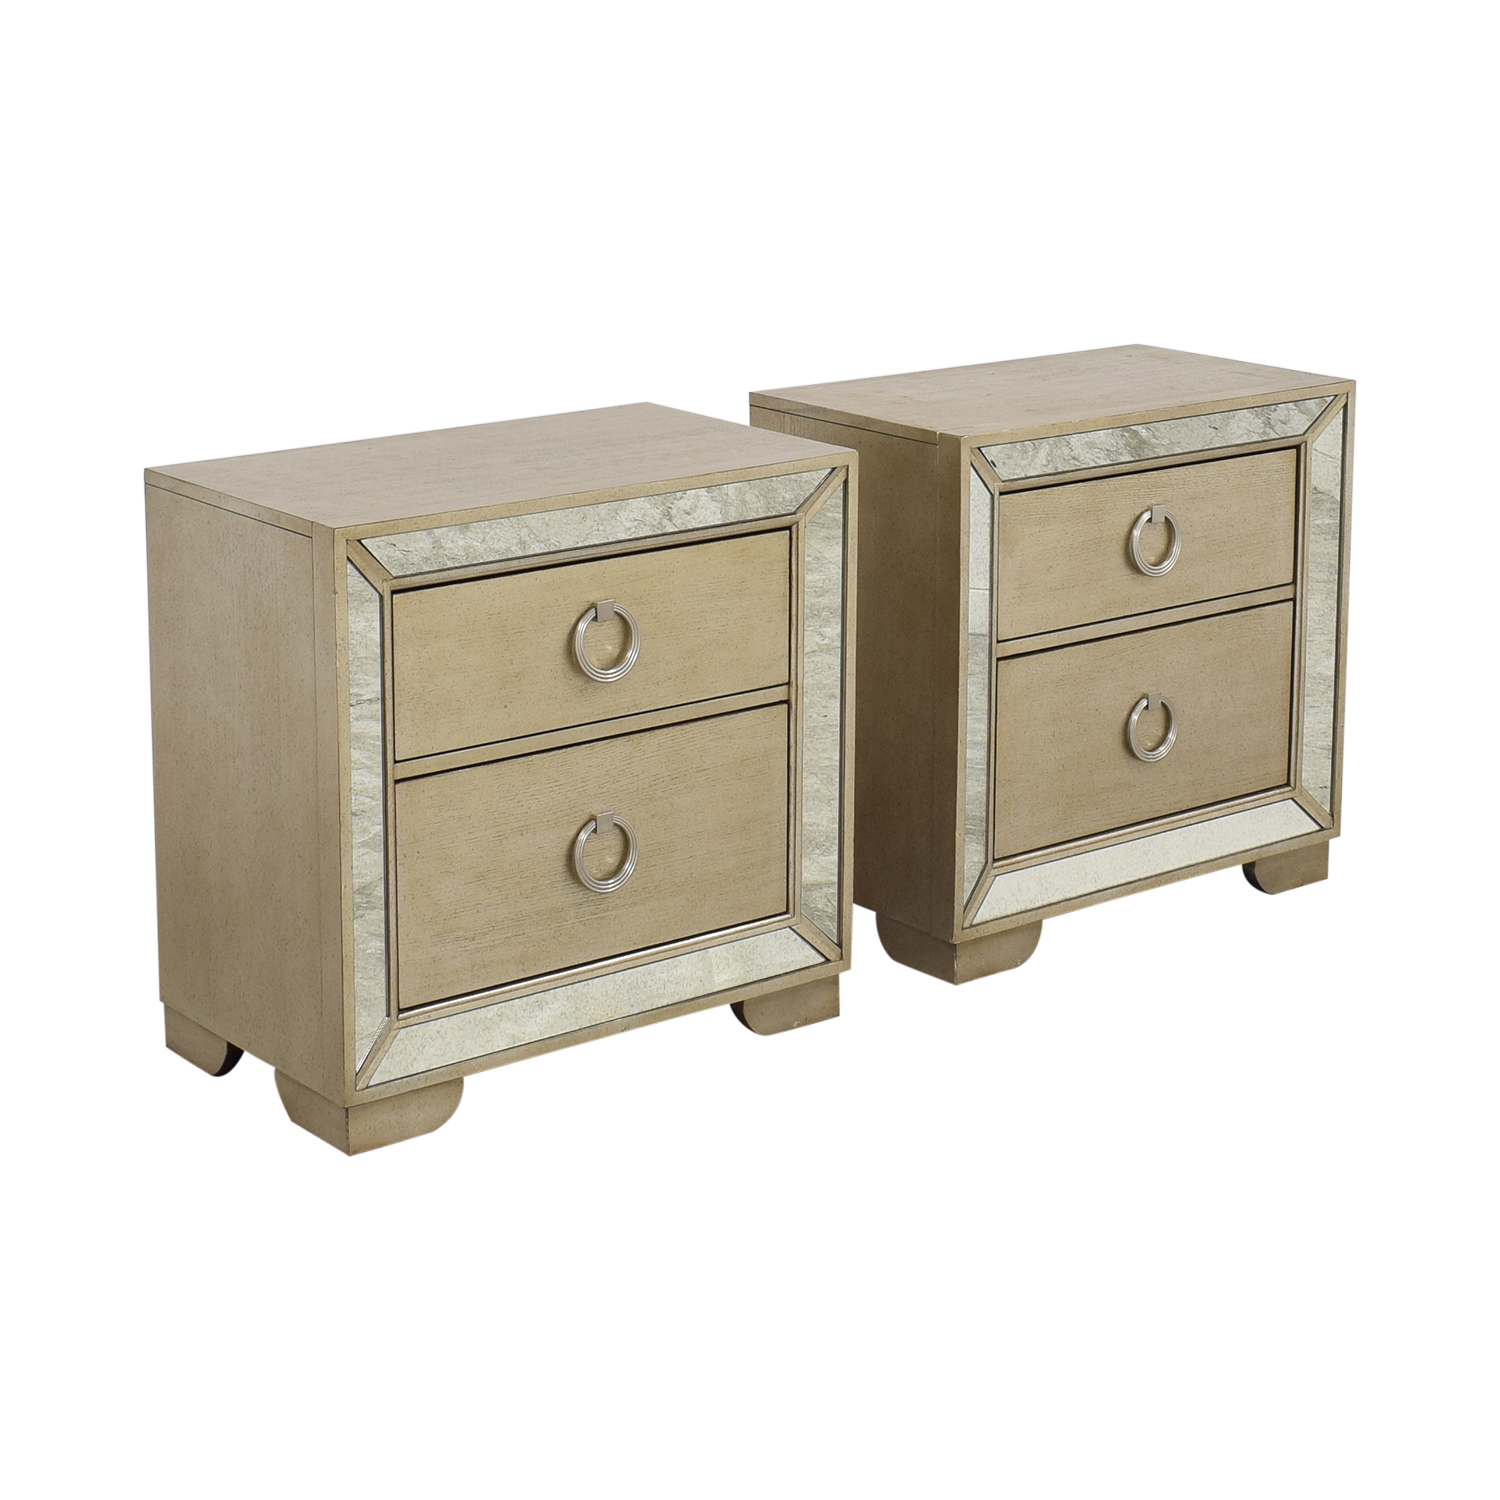 Macy's Macy's Ailey Nightstands for sale